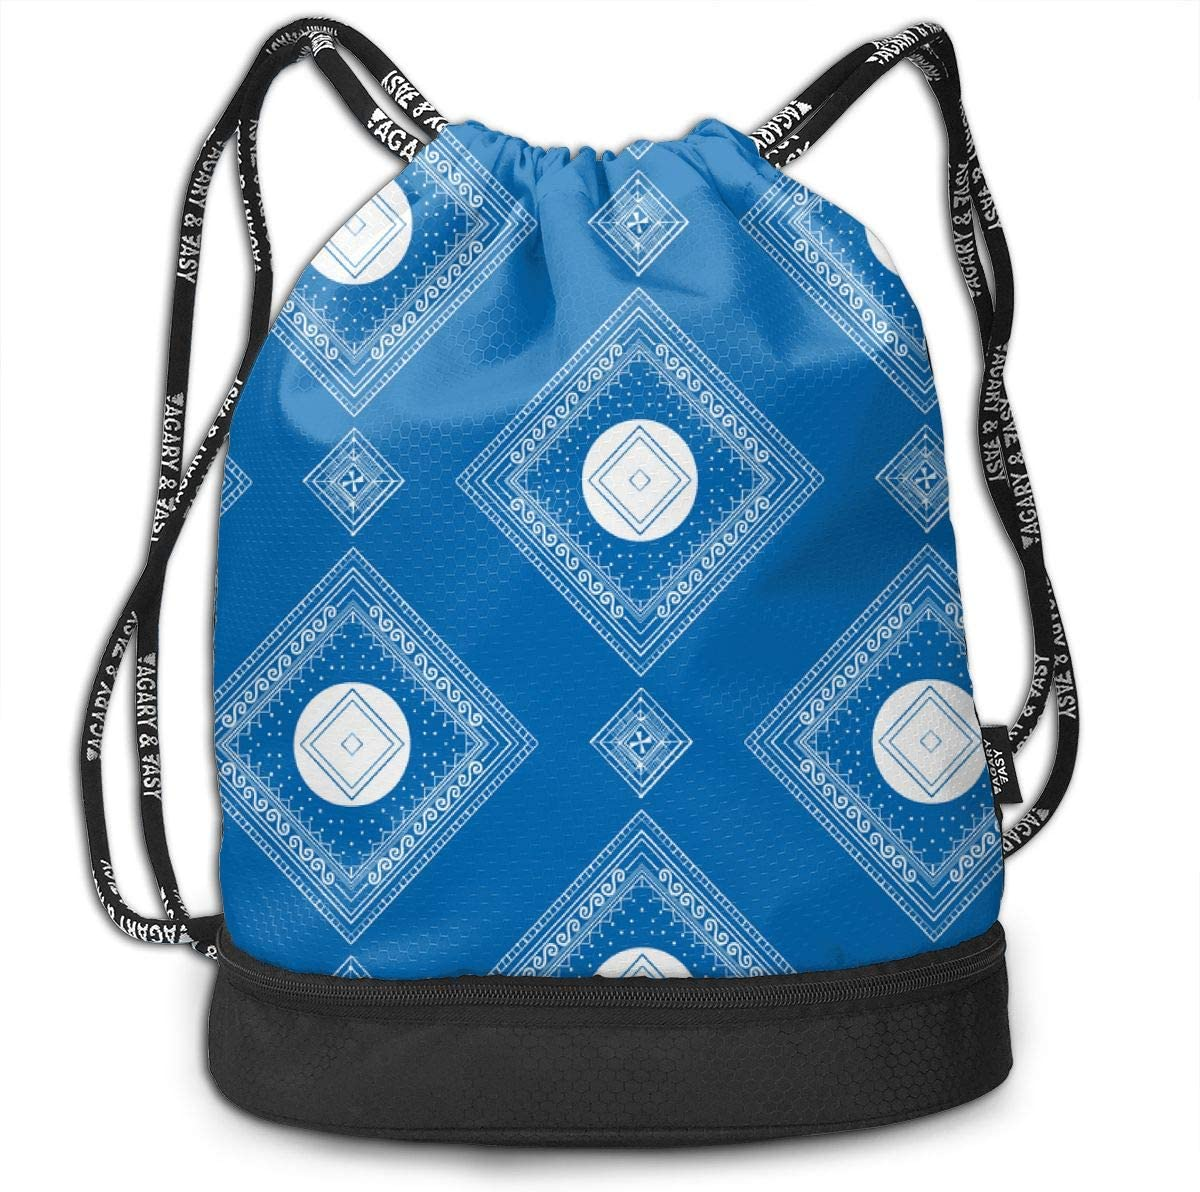 Blue Dot Block Drawstring Backpack Sports Athletic Gym Cinch Sack String Storage Bags for Hiking Travel Beach